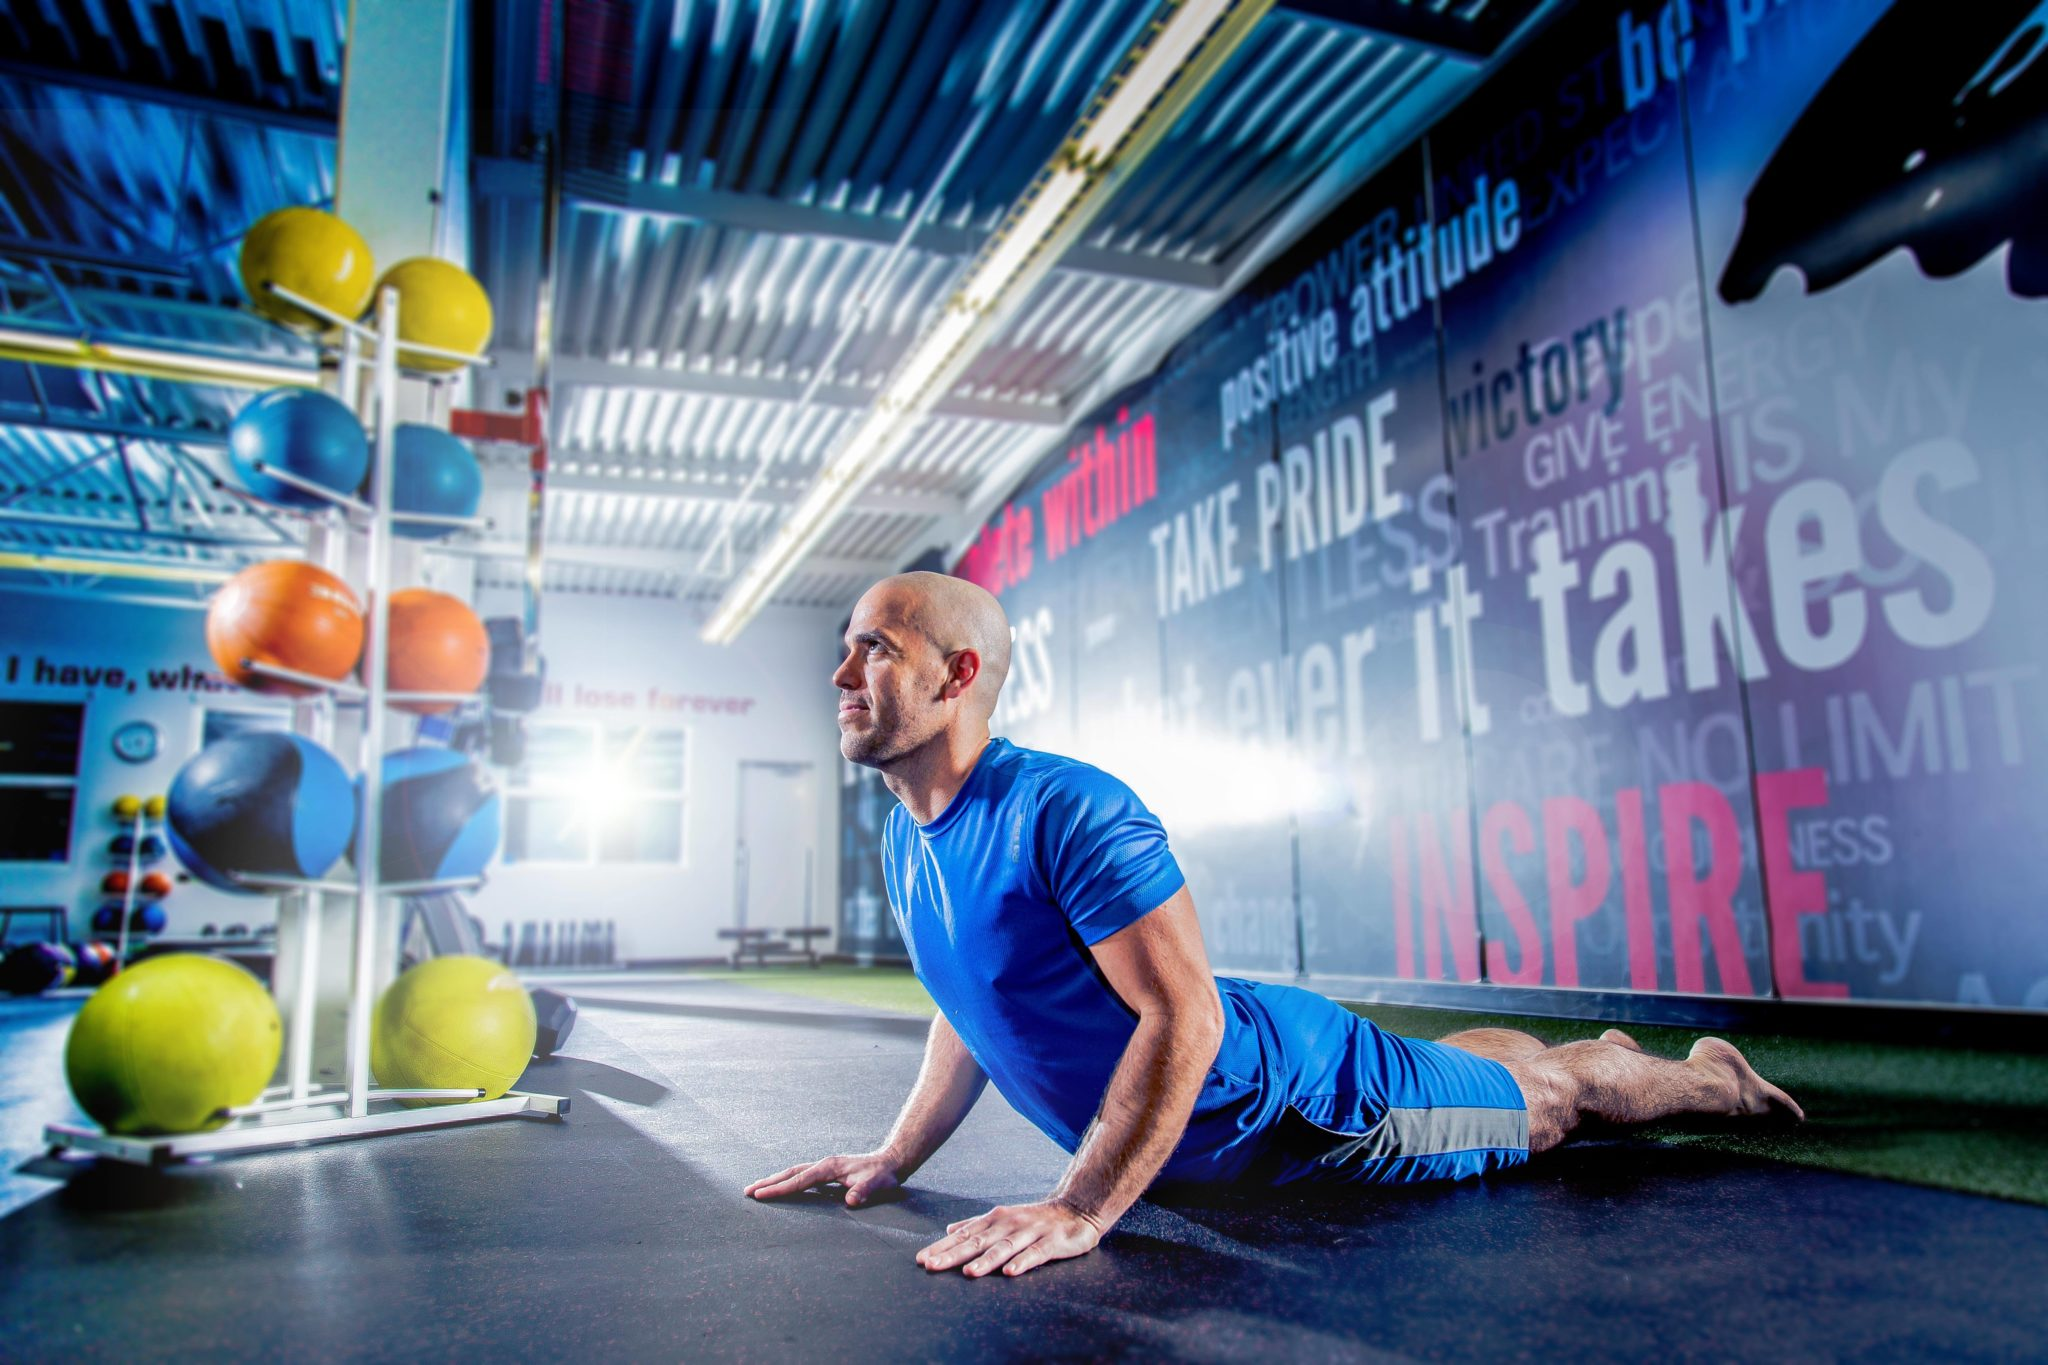 Yoga for Swimmers: Mobility and Strength for an Efficient Butterfly